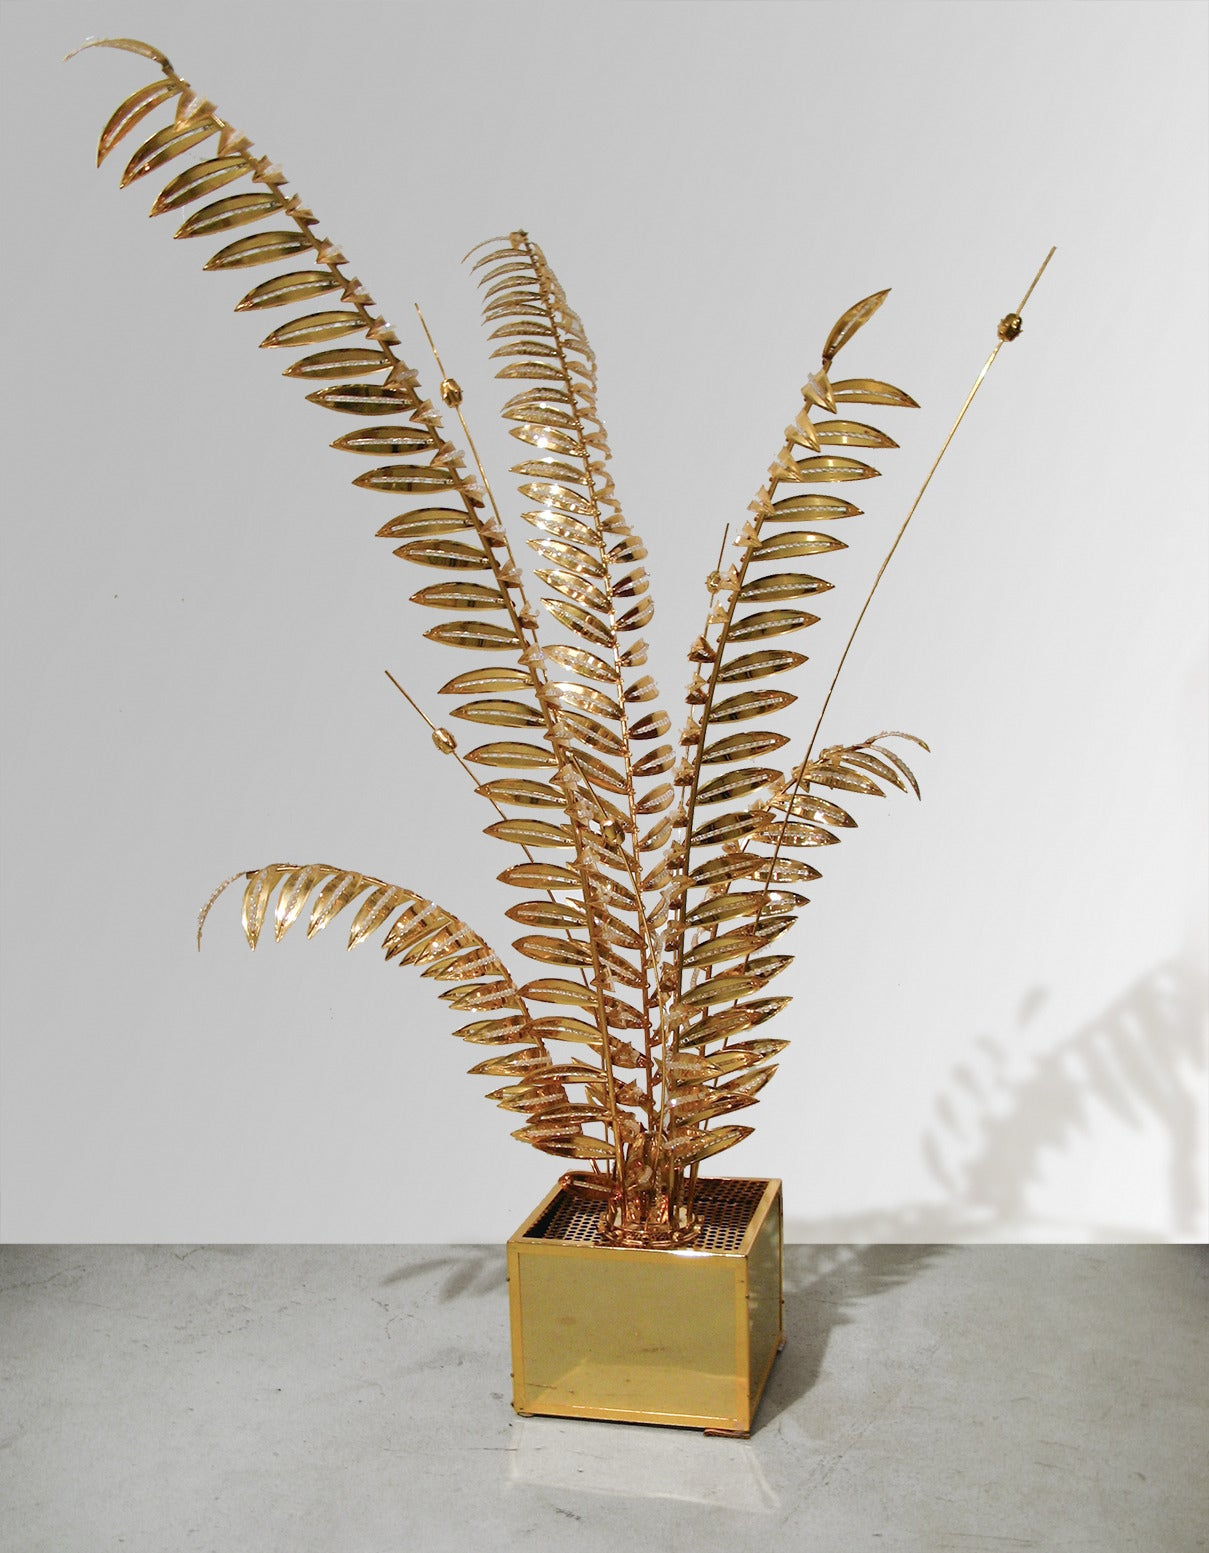 Brass Floor Lamp with Stylized Palm Tree Branches Embellished with Crystals 2